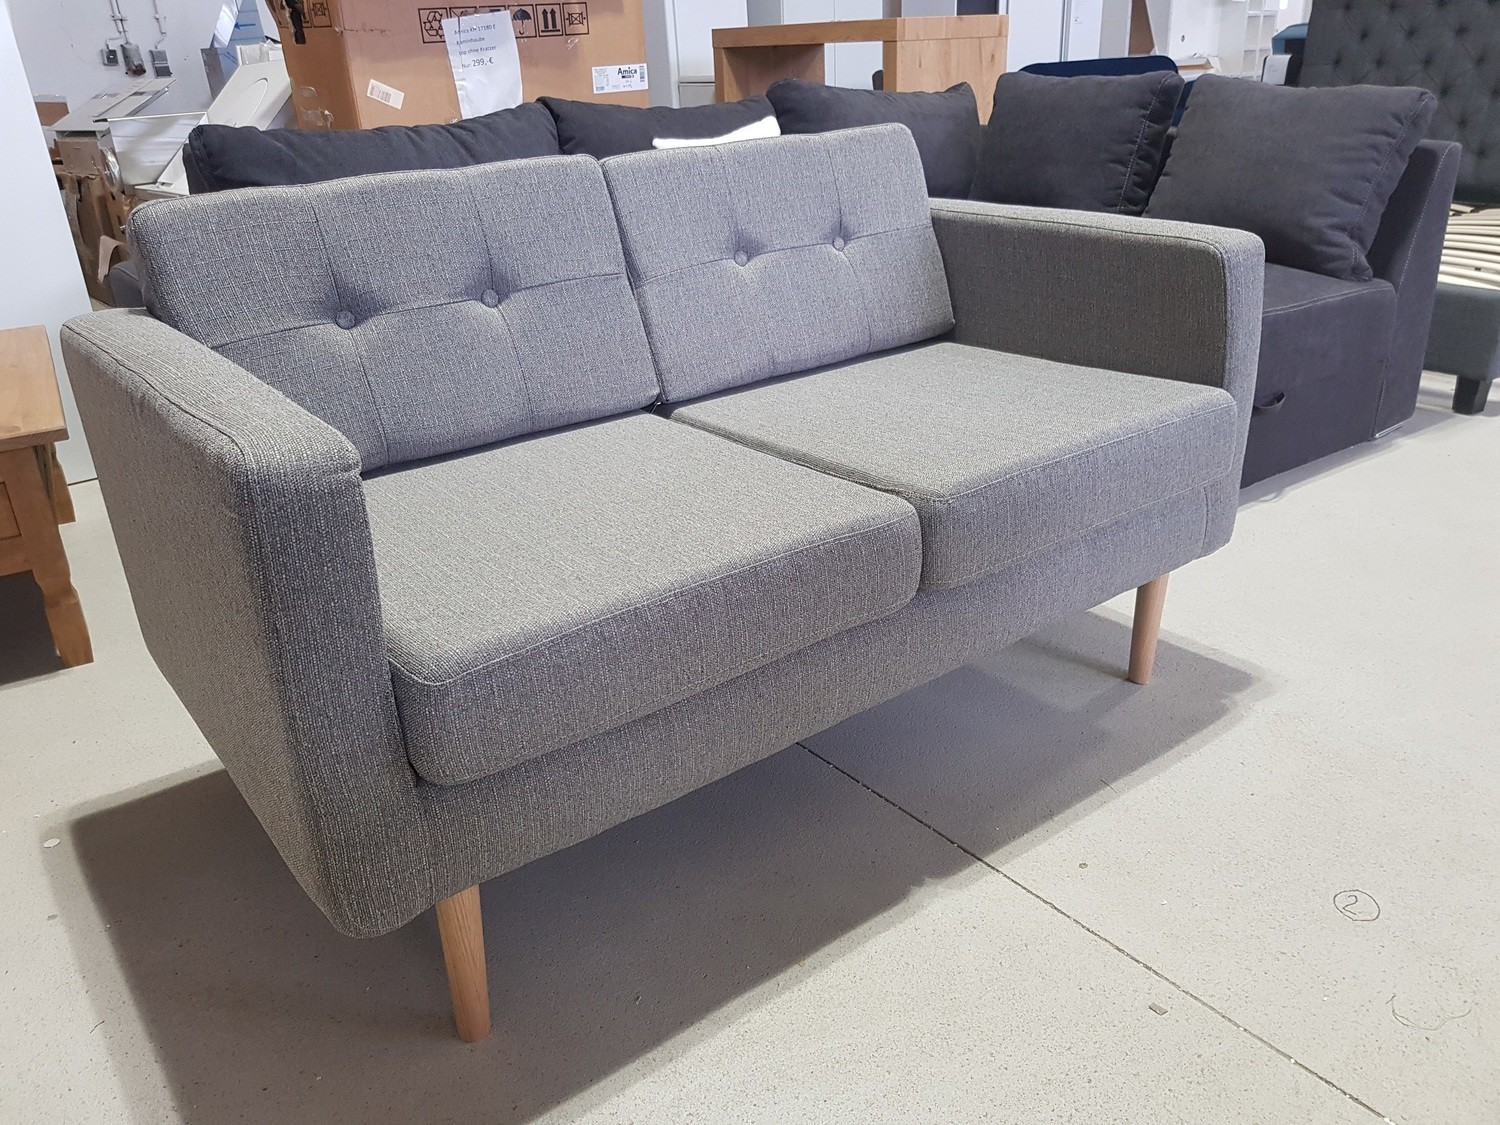 Morteens Sofa Sofa Croom Morteens Möbel Bei Essen Designermöbel